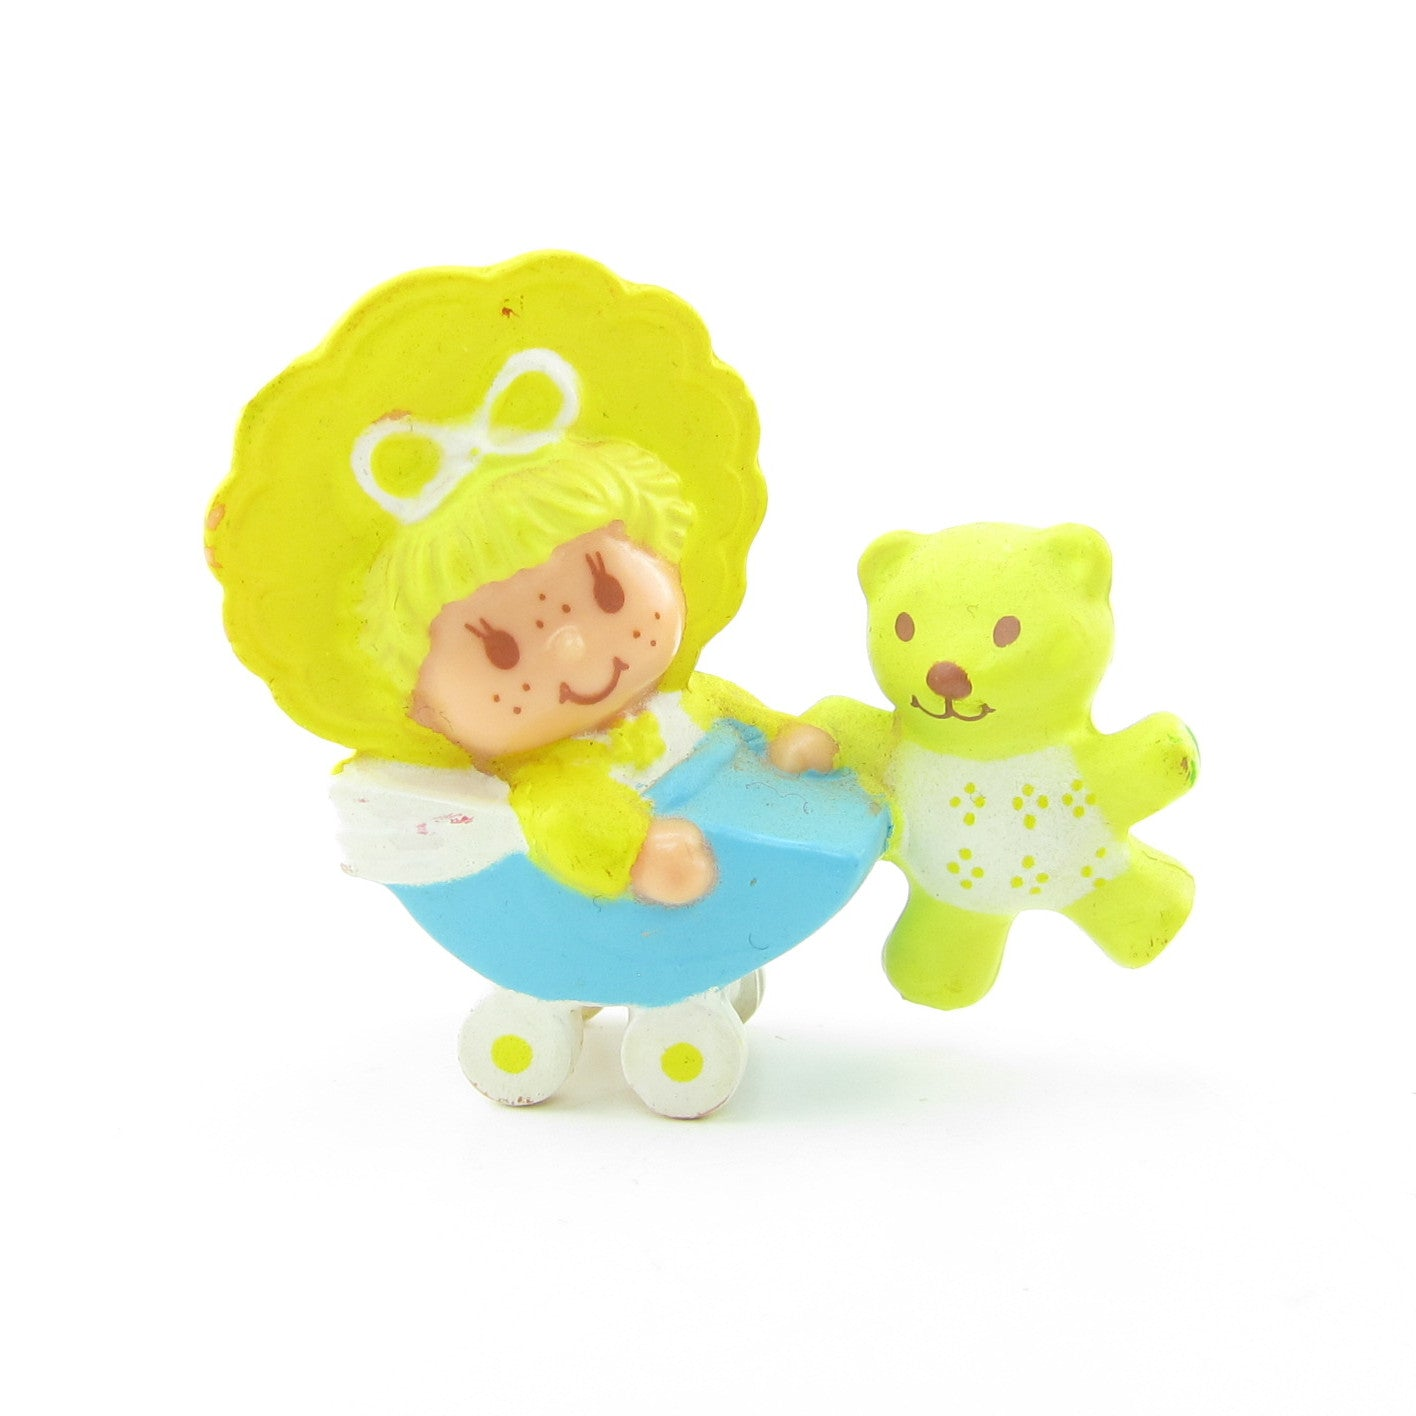 Butter Cookie with Jelly Bear in a Buggy Strawberry Shortcake miniature figurine